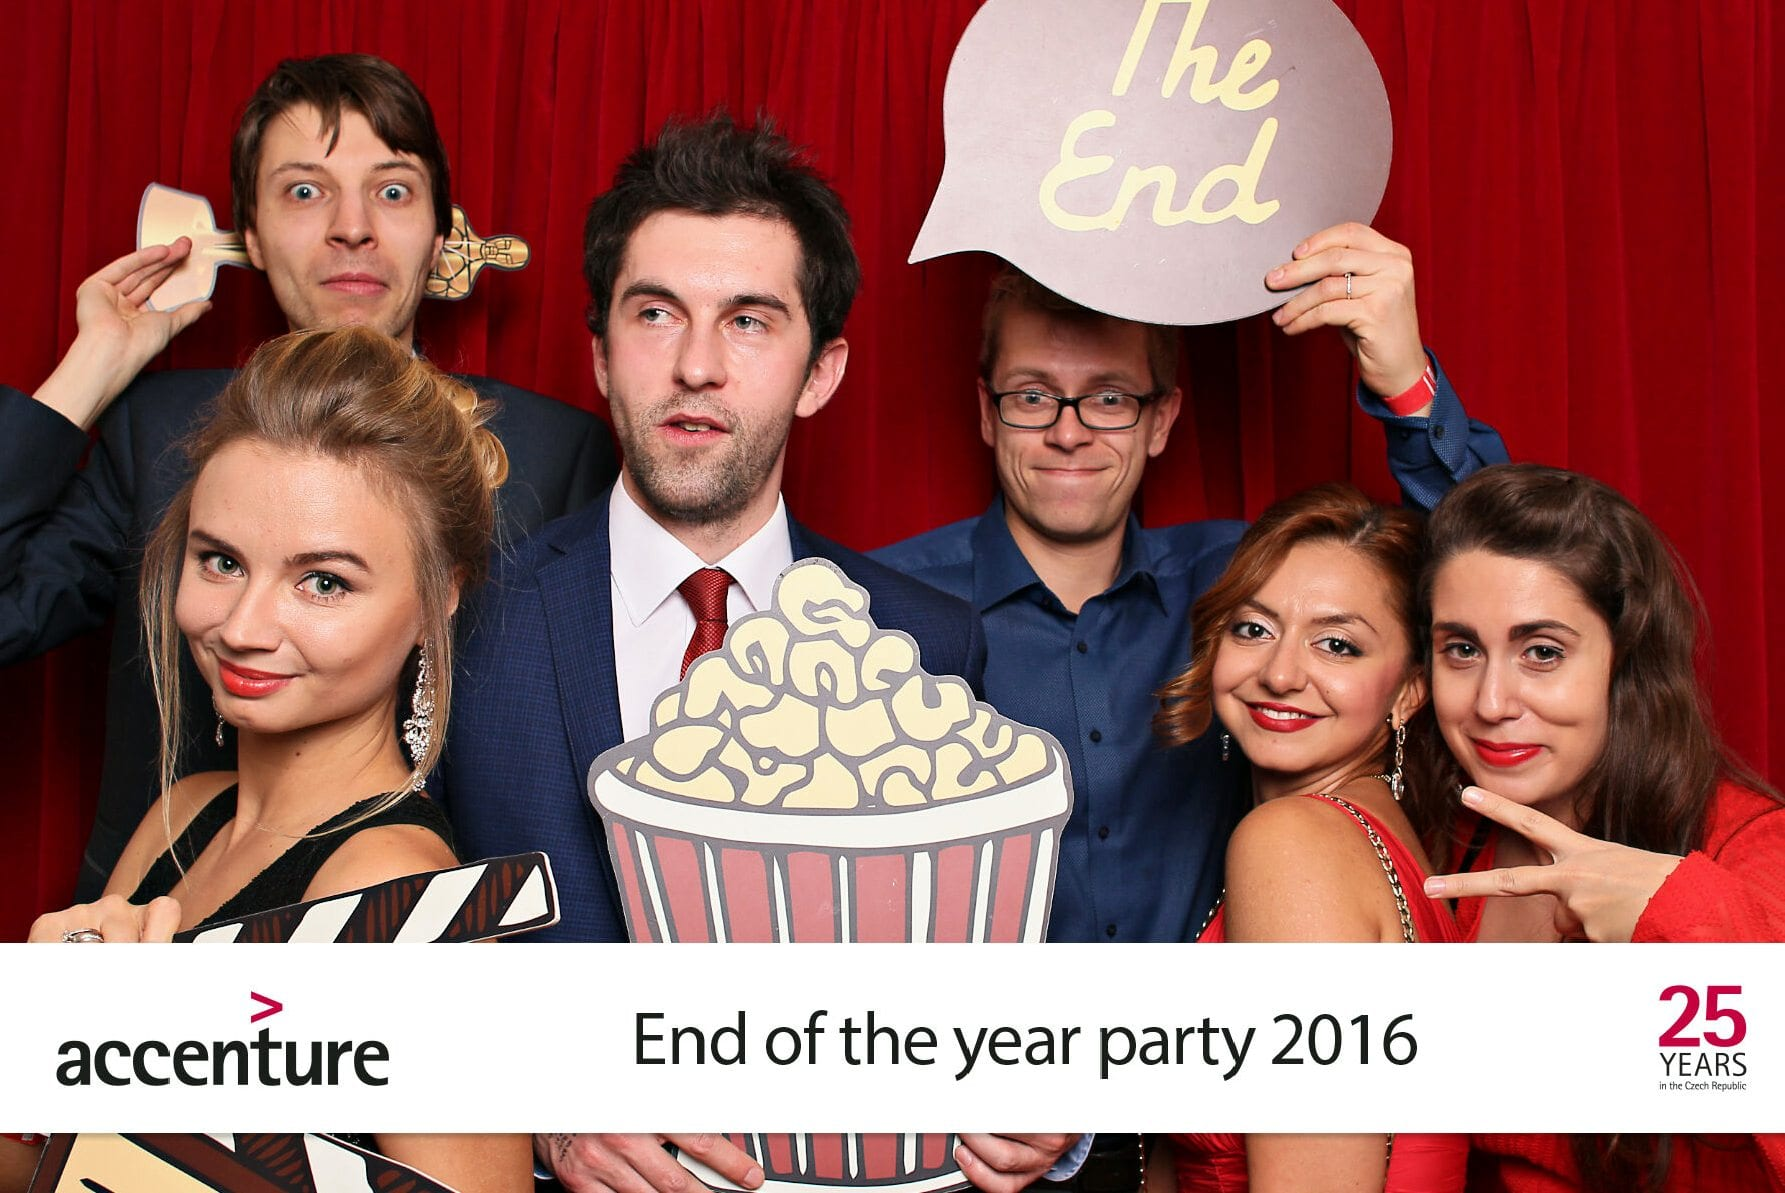 fotokoutek-accenture-end-of-the-year-party-2-171675